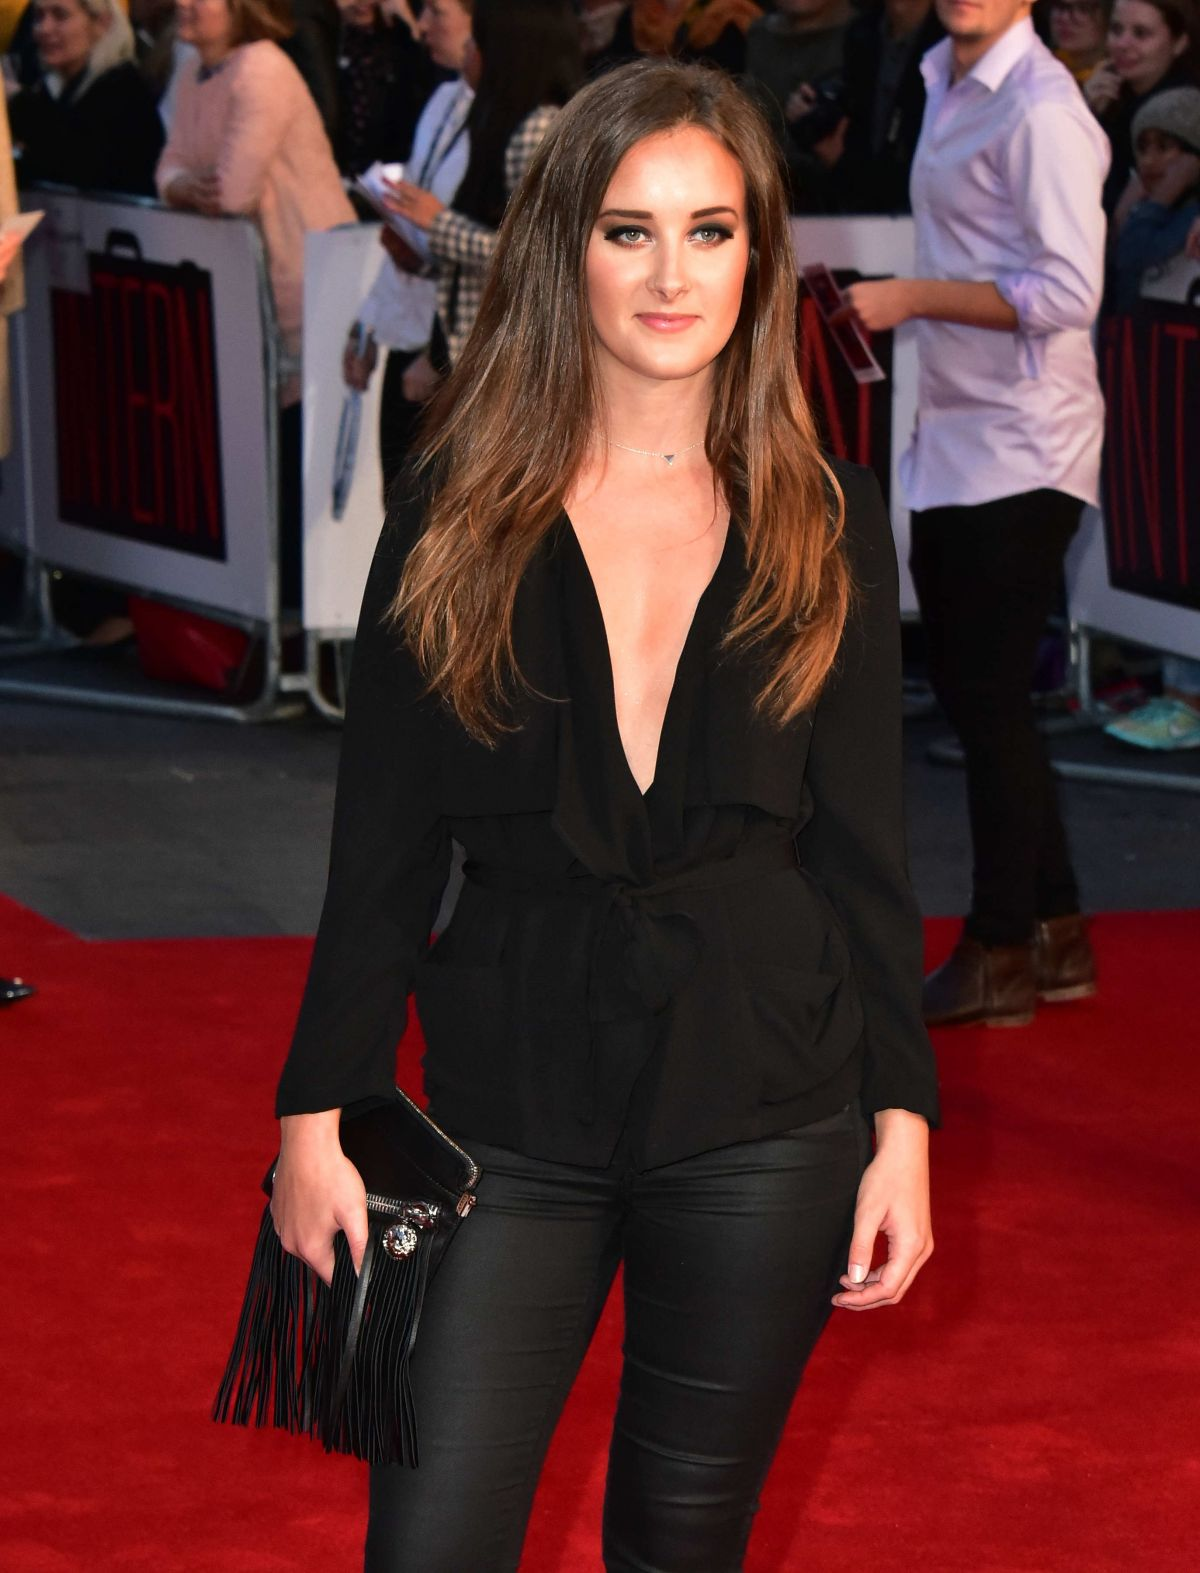 APRIL PEARSON at The Intern Premiere in London 09/27/2015